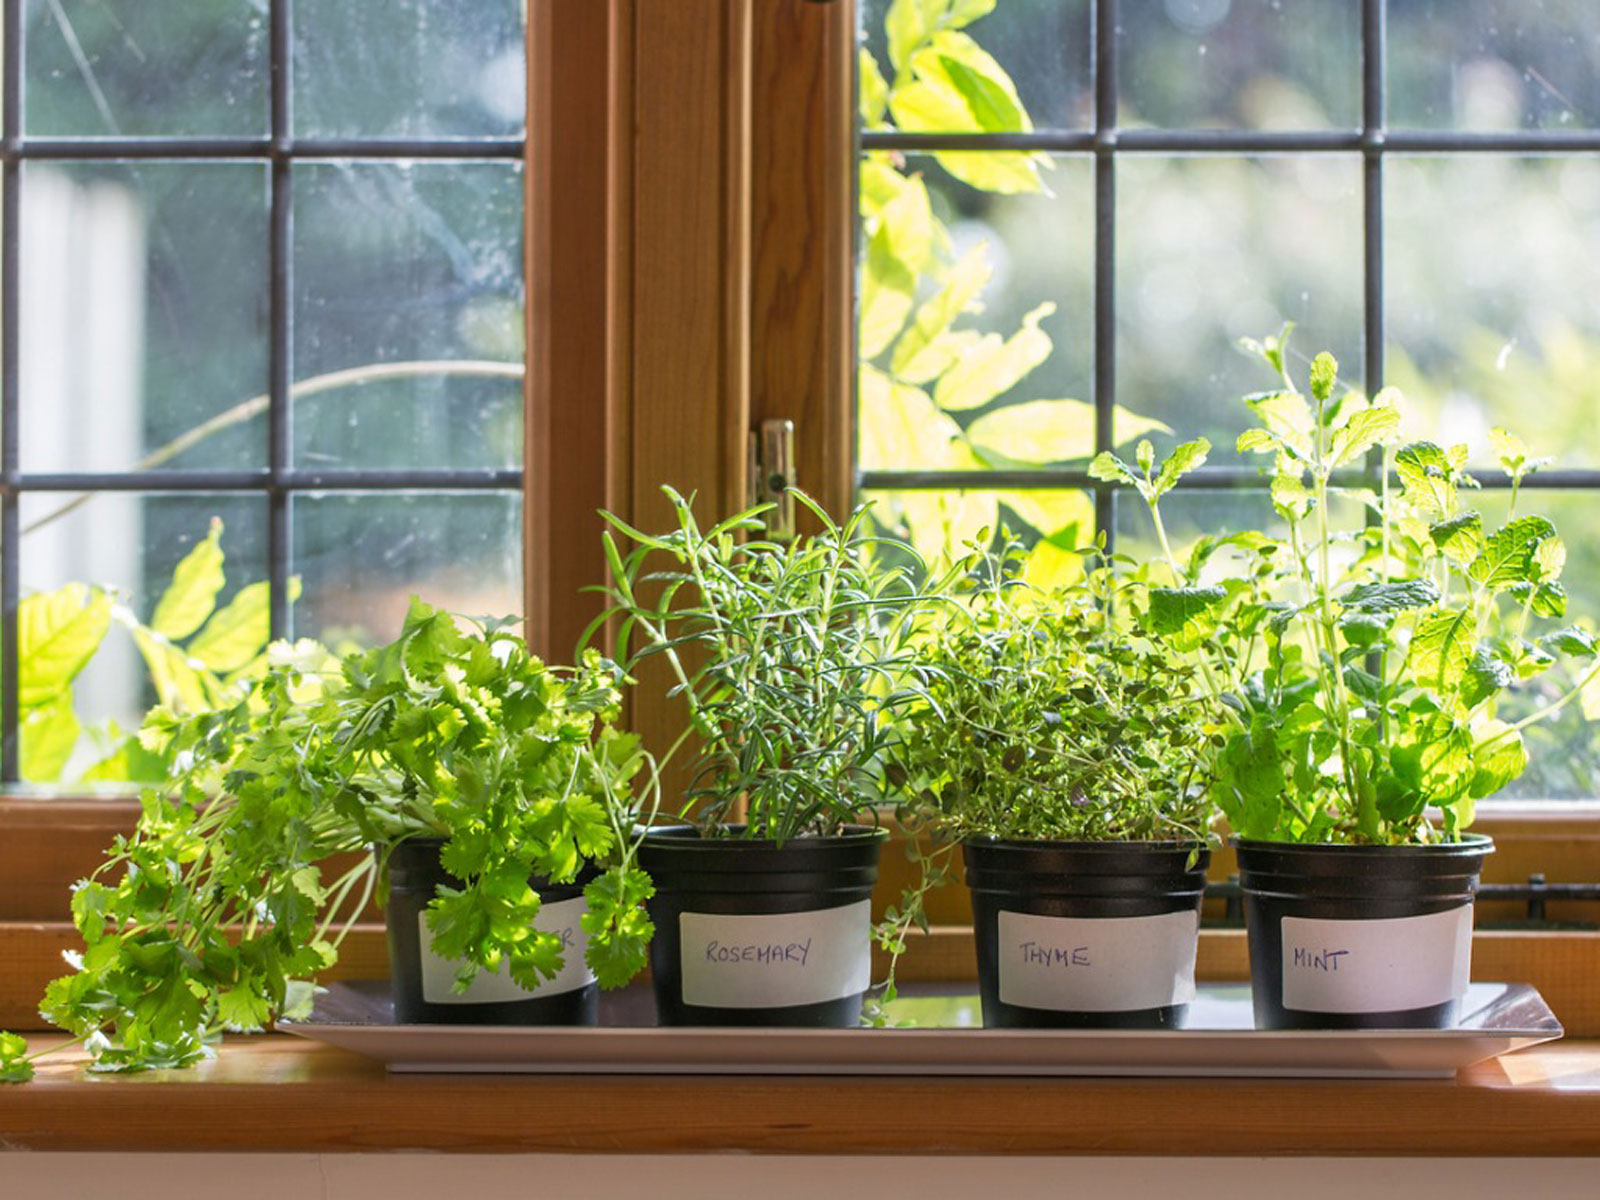 7 Tips From Experts On Windowsill Herb Garden - What Herbs Should Beginners Grow